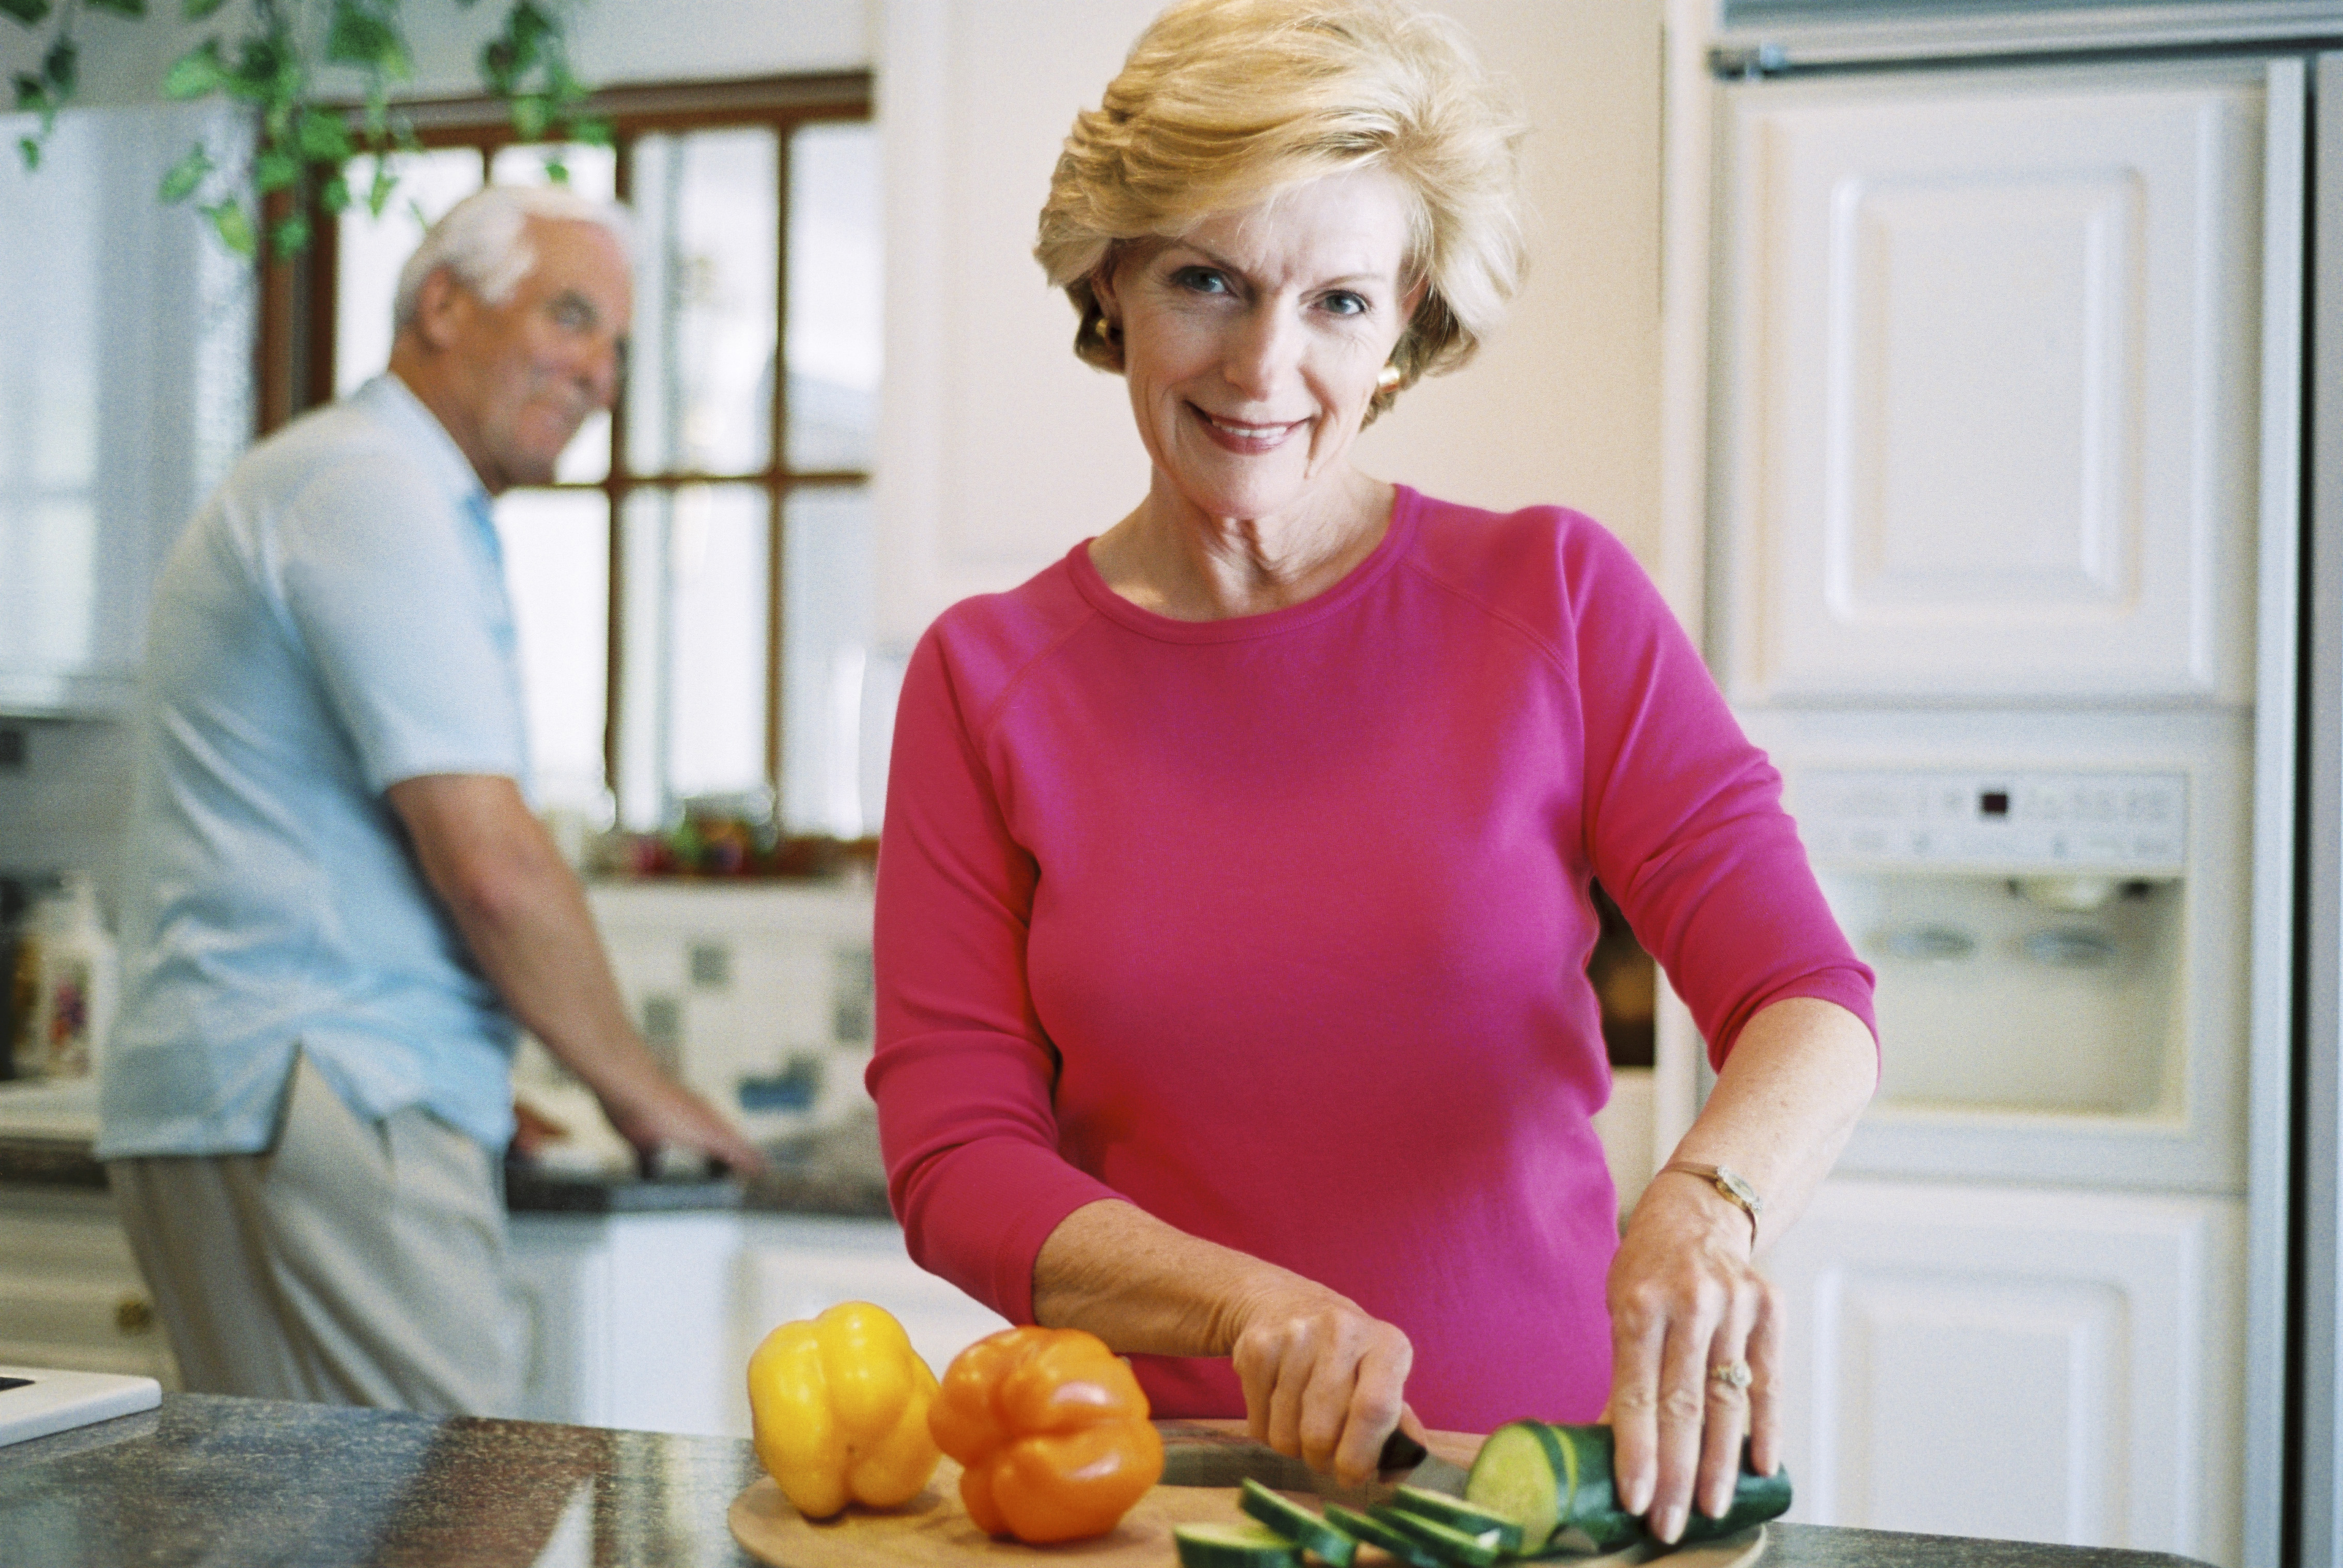 Meal Service Delivery Options for Seniors Who Don't Cook